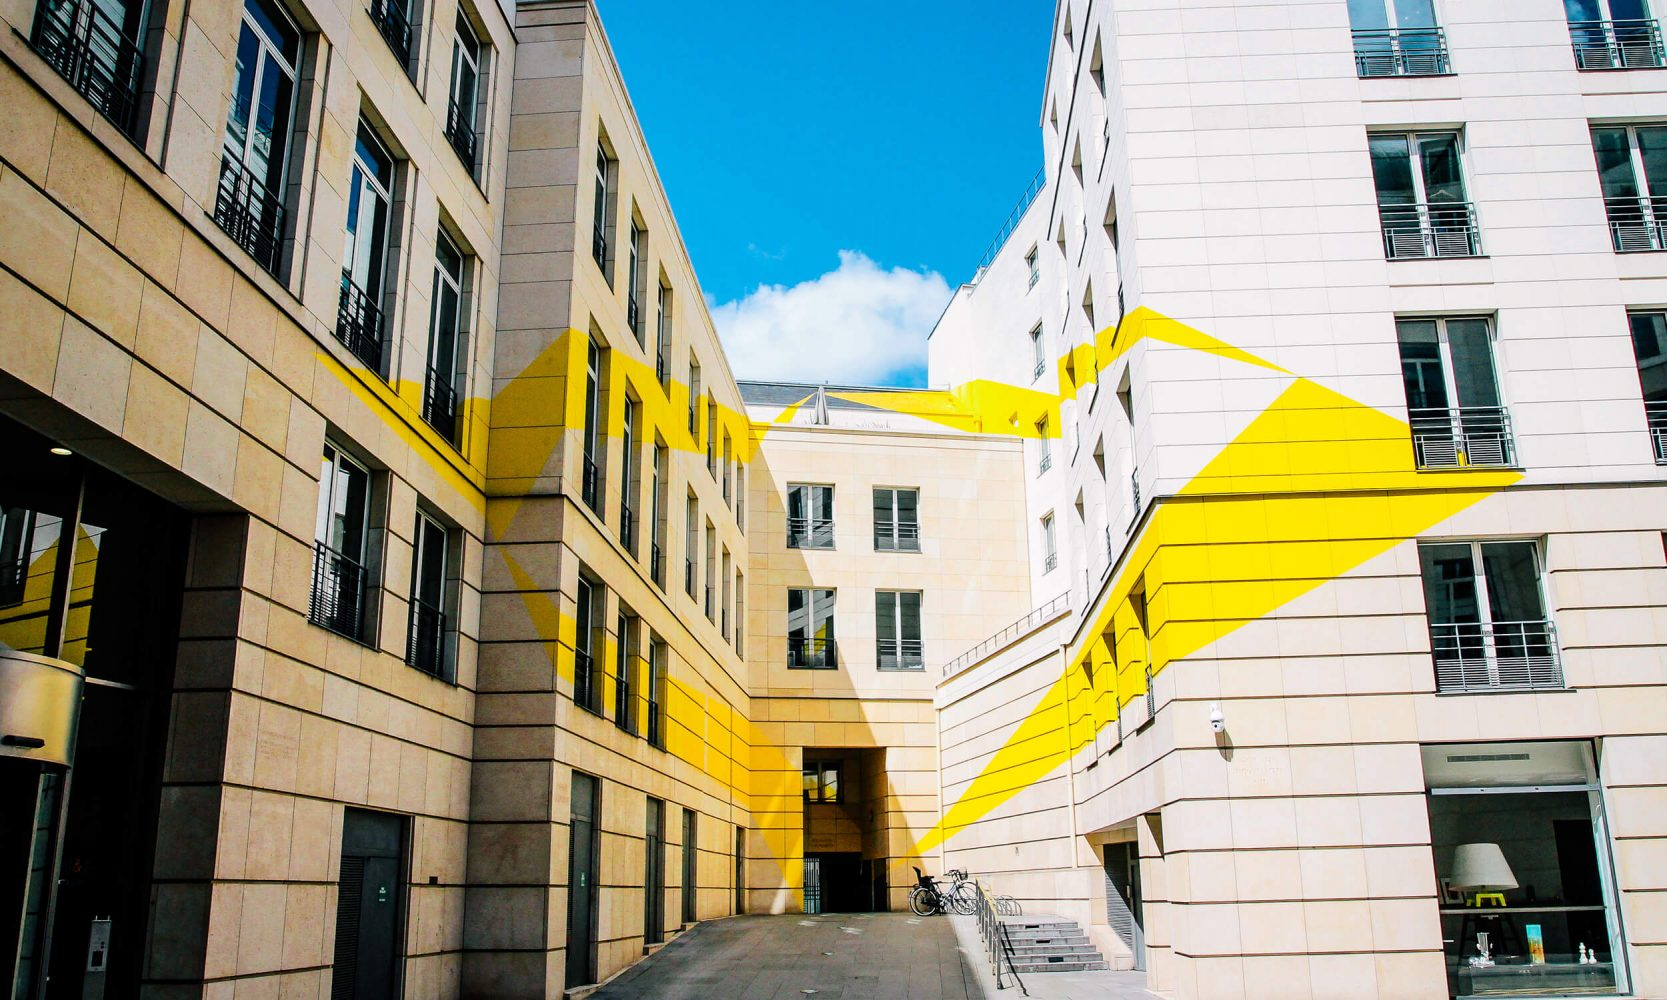 buildings with yellow design